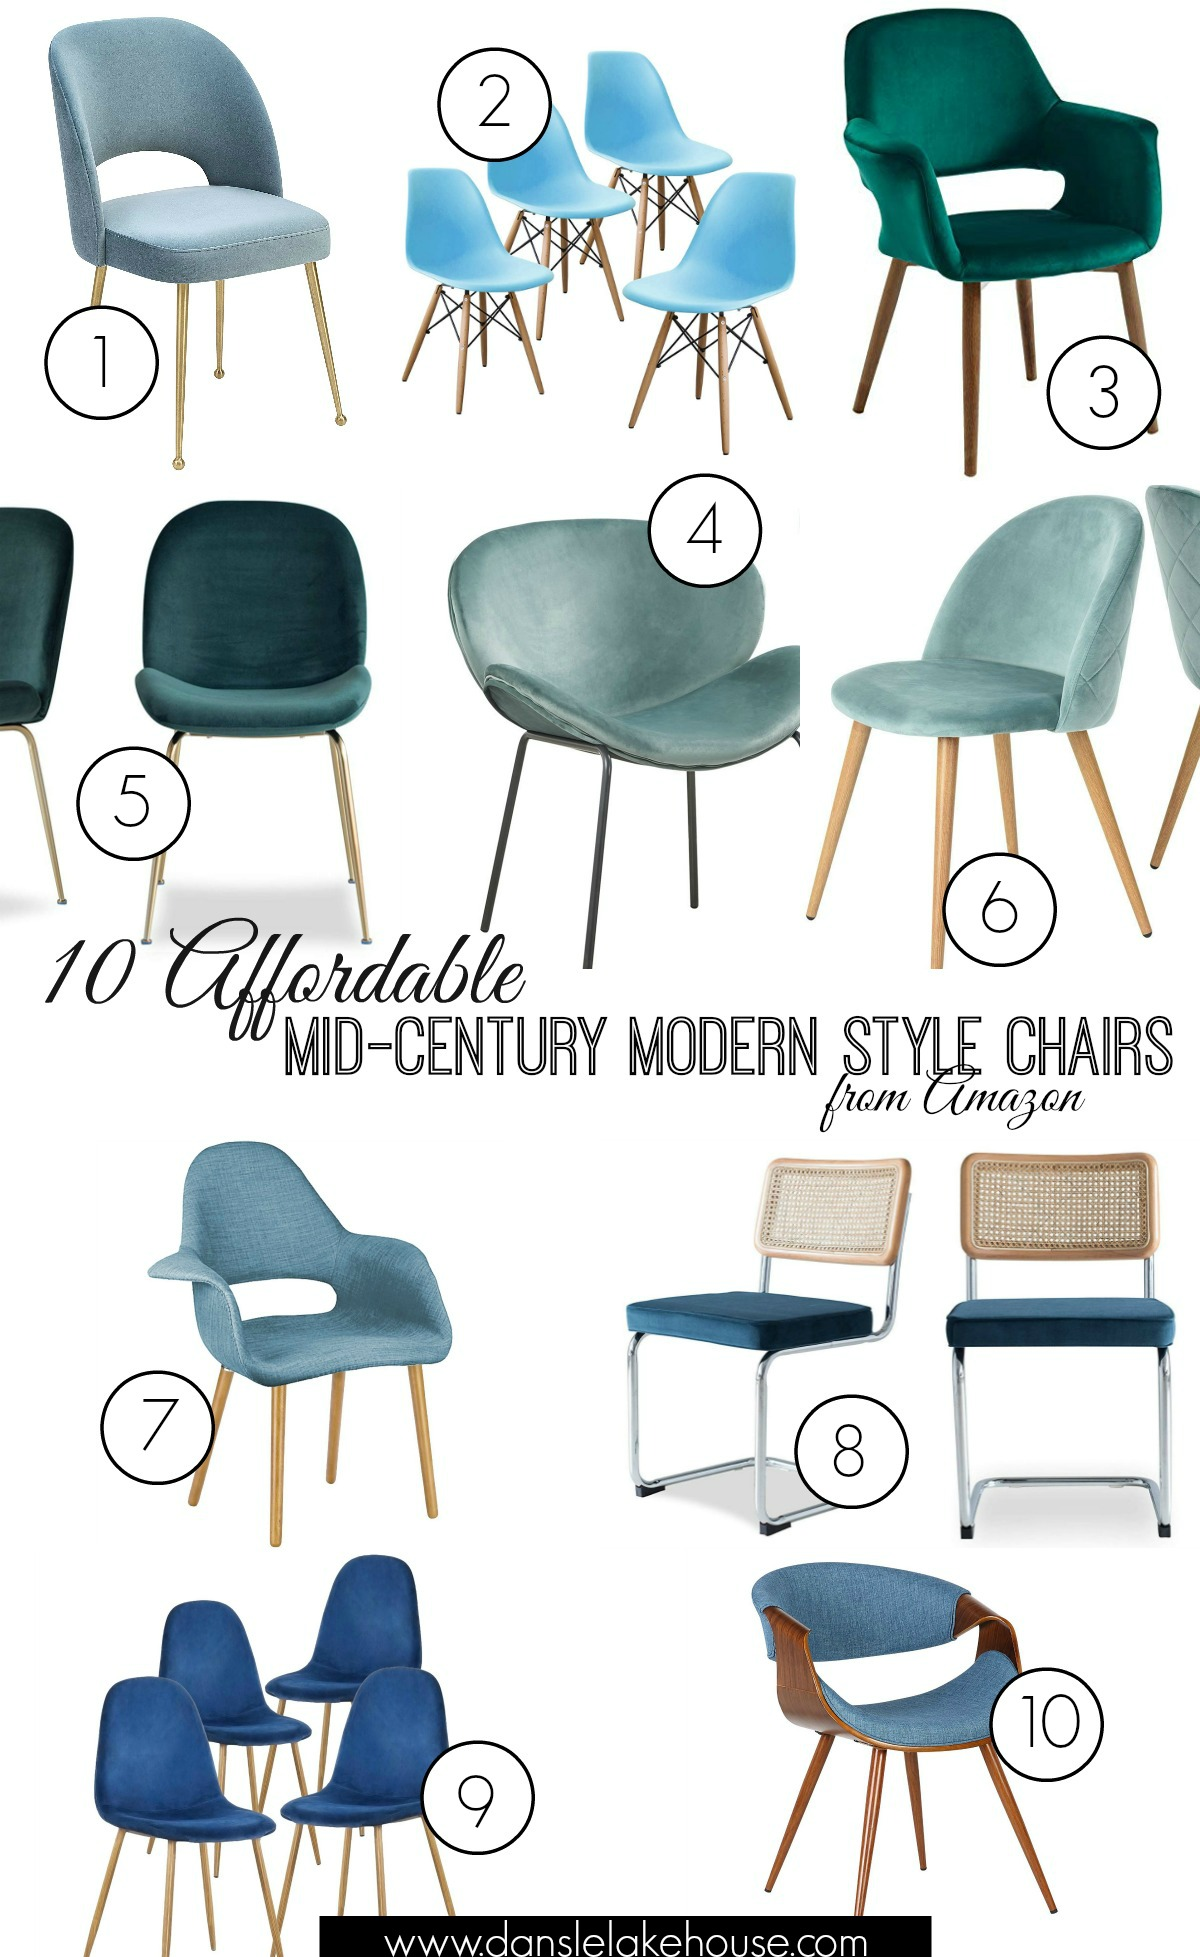 New Grey Velvet Dining Chairs + 10 Affordable Mid-Century Modern Inspired Dining Chairs